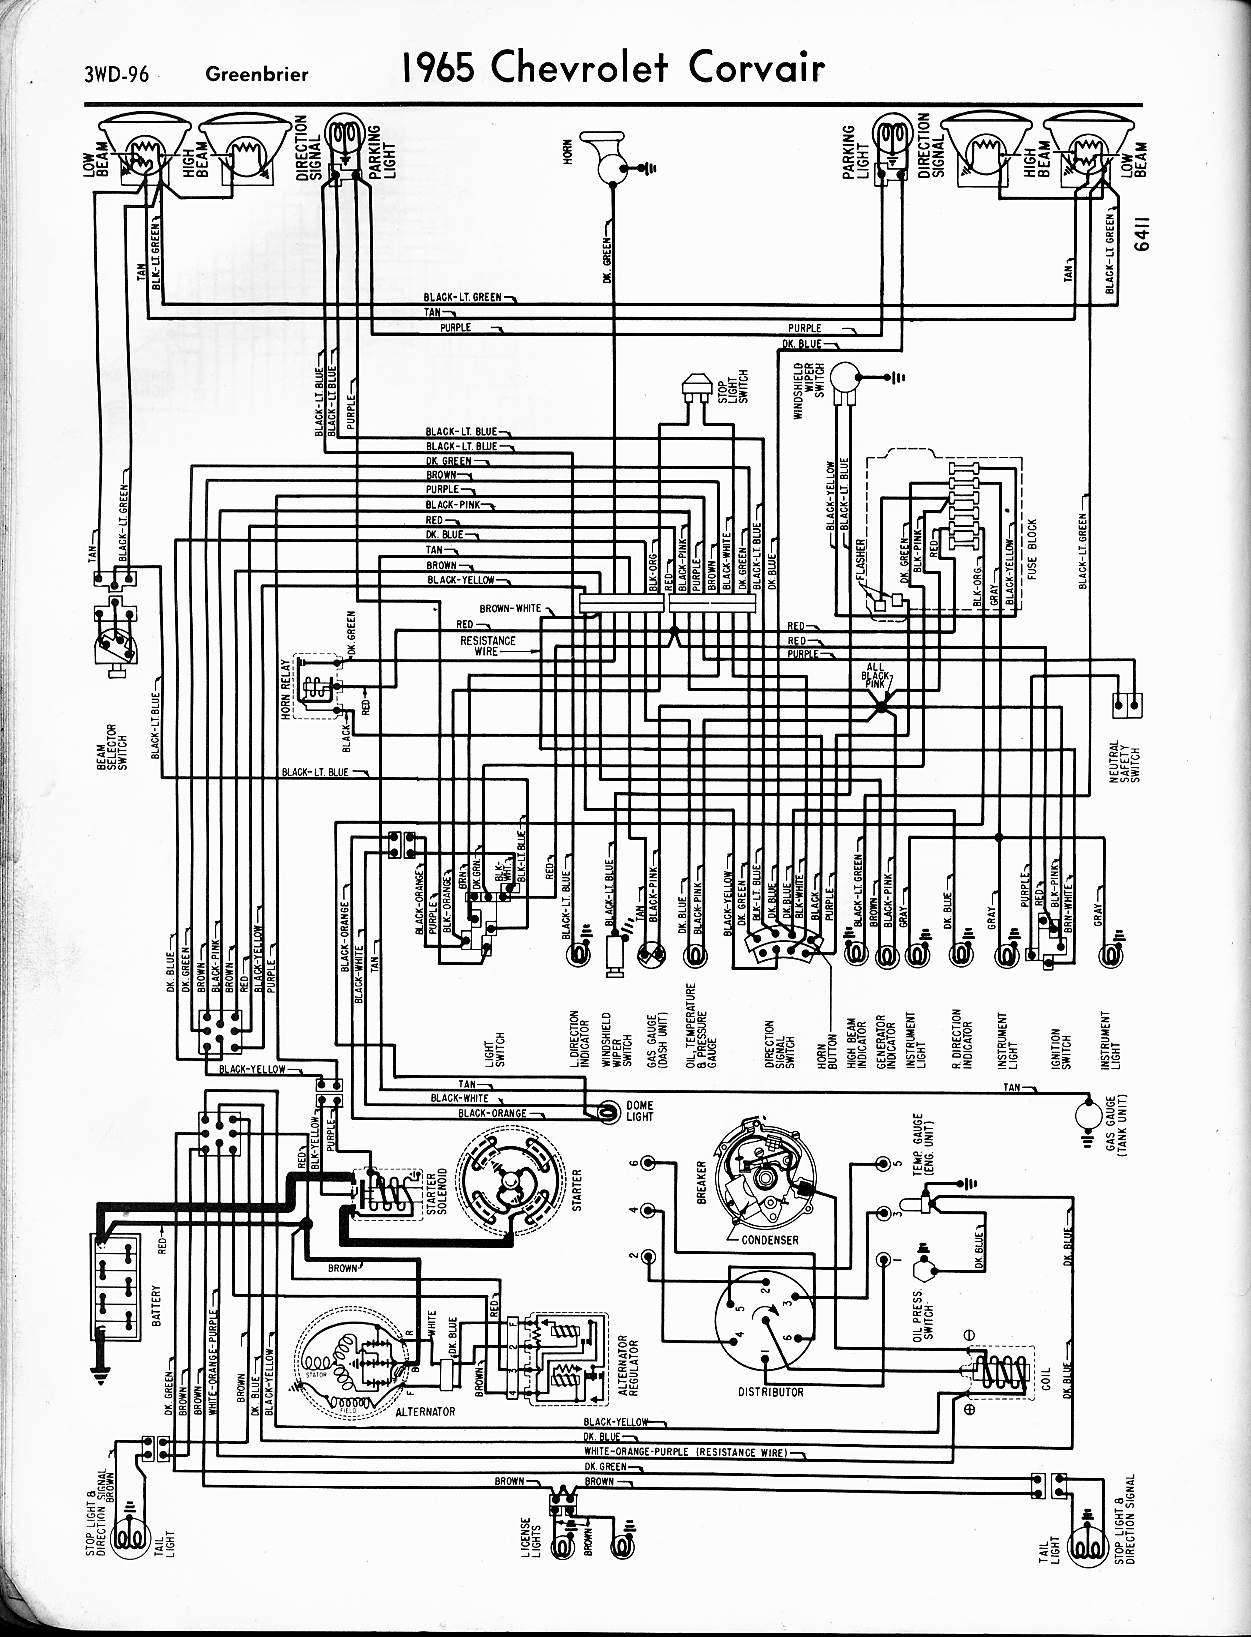 Astounding Corvair Schematic Wiring Diagram Wiring Cloud Eachirenstrafr09Org